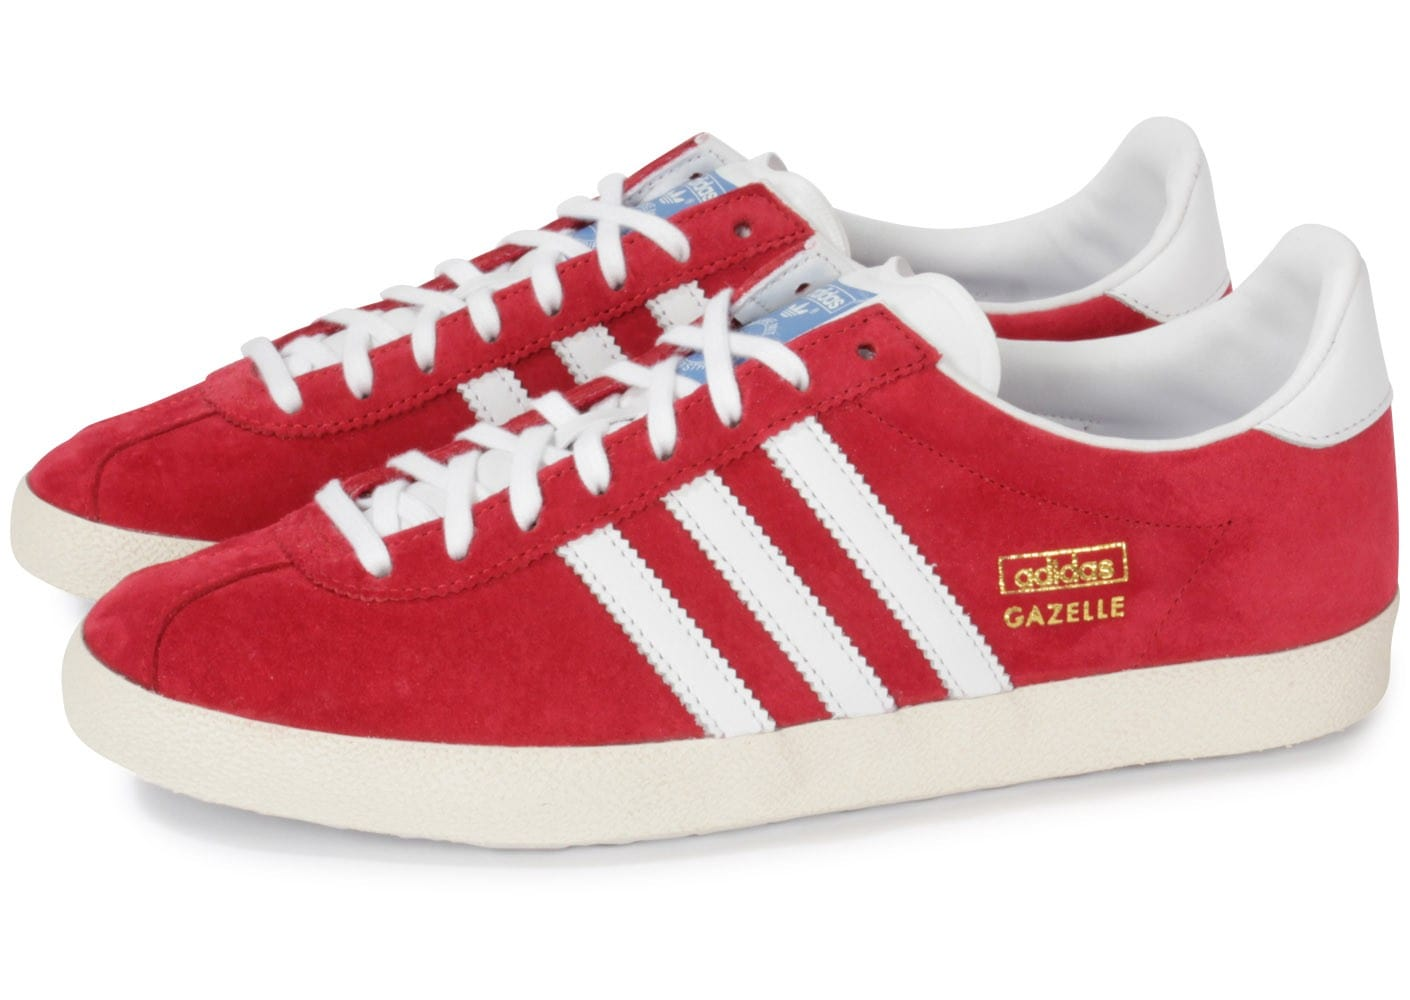 adidas gazelle gris rouge homme